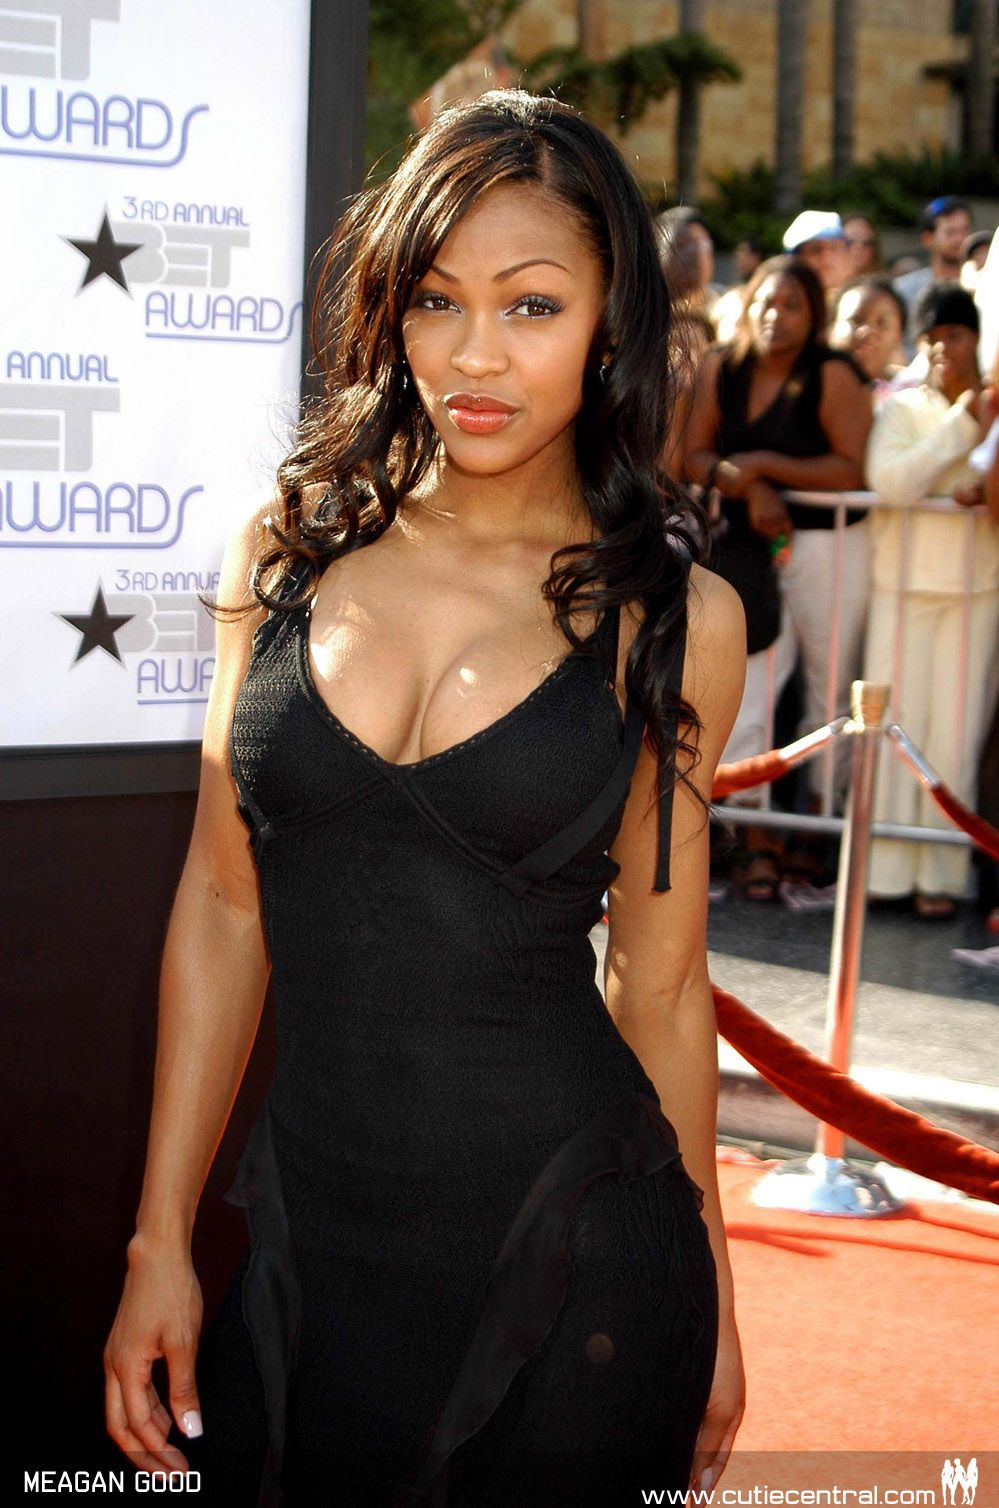 41 Hot And Sexy Pictures Of Meagan Good Are Just Too Sensuous